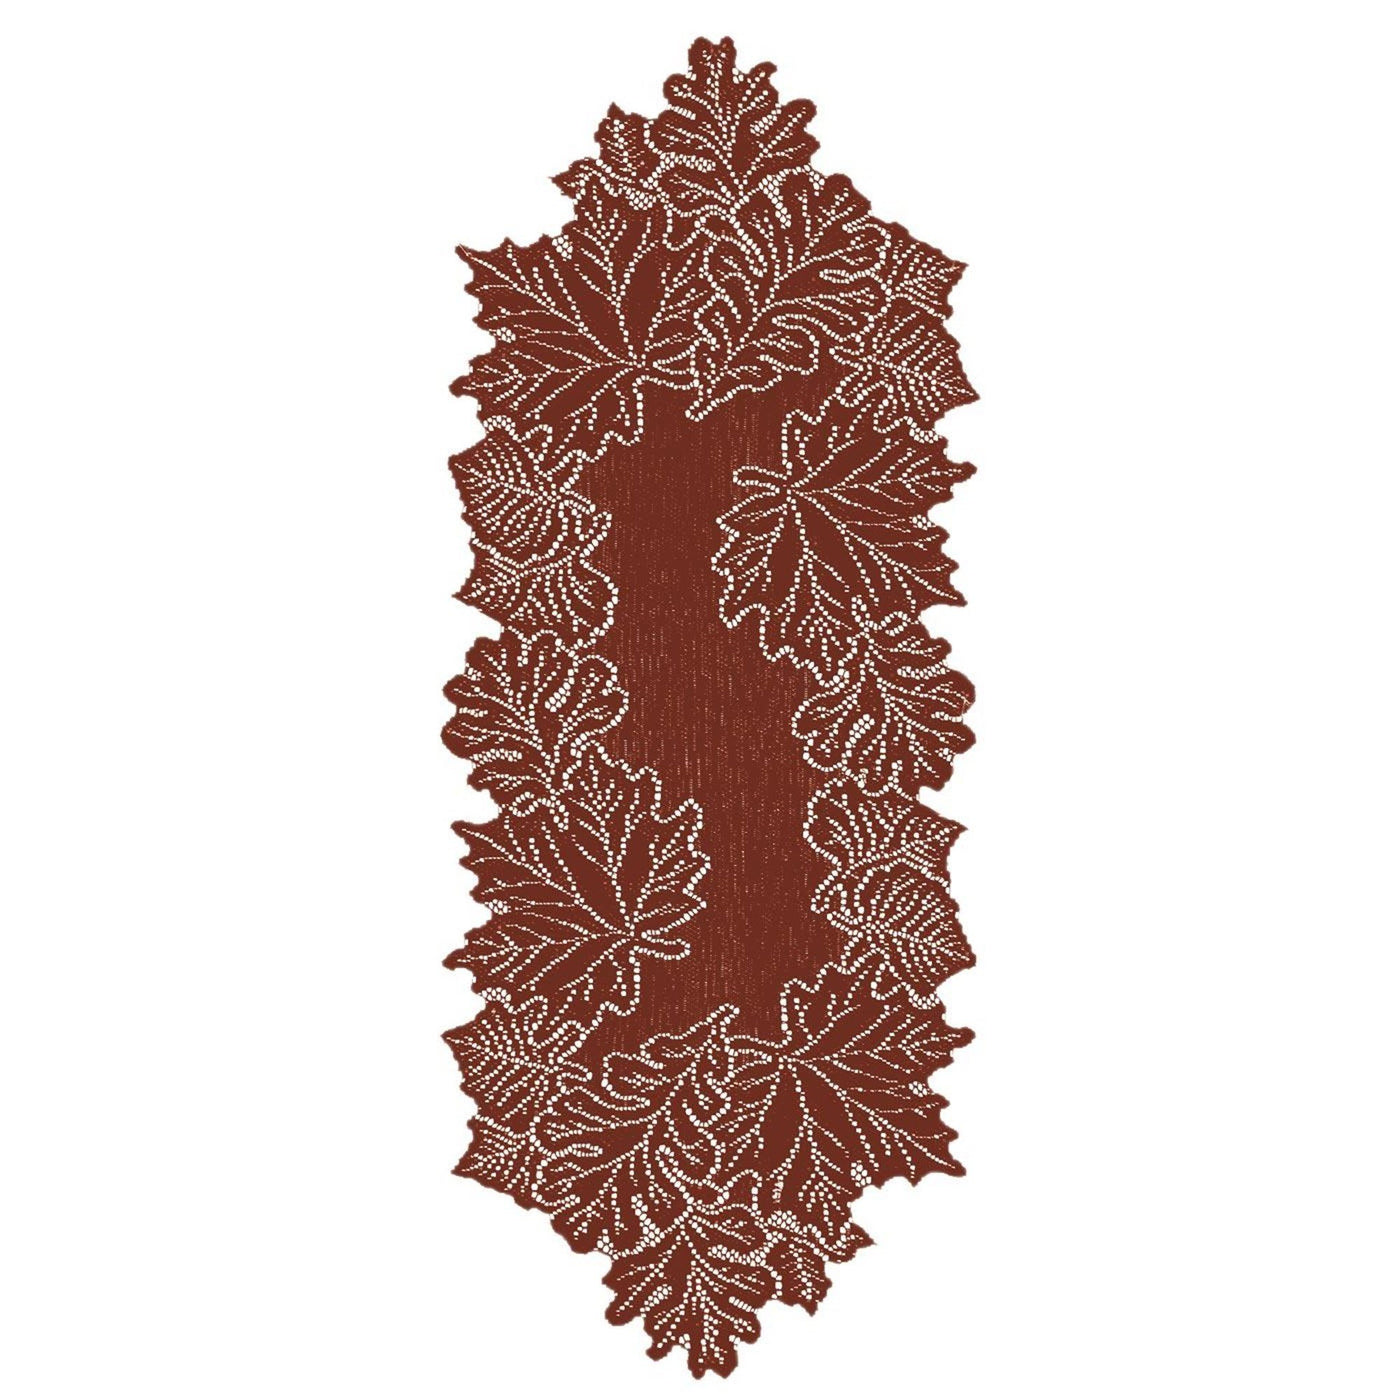 "Beautiful 14 x 36"" Leaf Table Runner in Dark Paprika or Goldenrod from Heritage Lace - Expressions of Home"